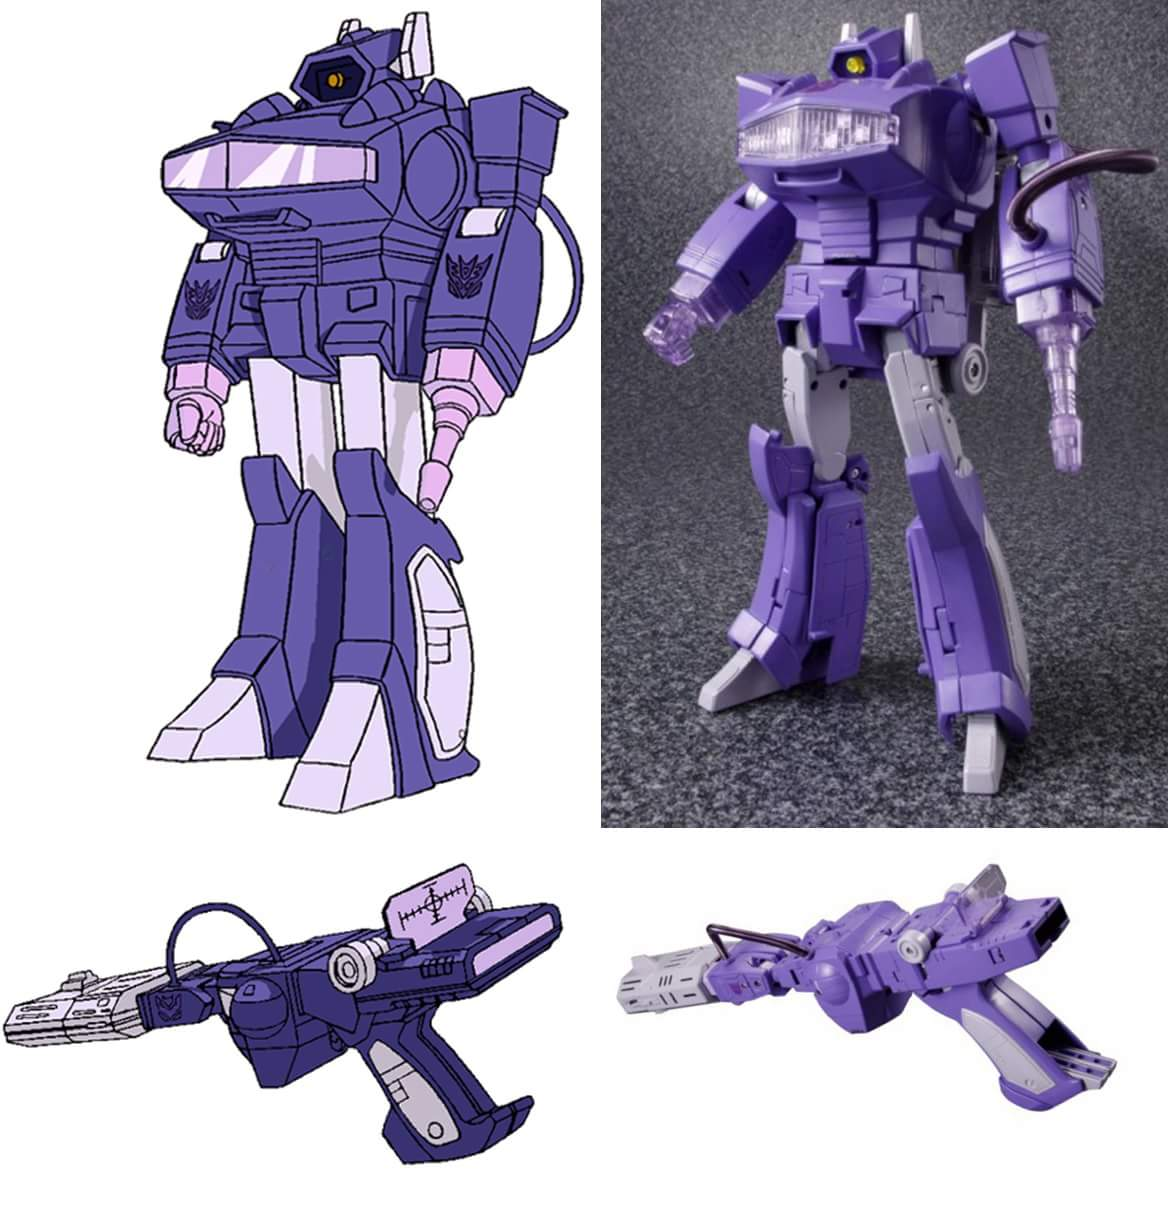 [Masterpiece] MP-29 Shockwave/Onde de Choc LkatekNz